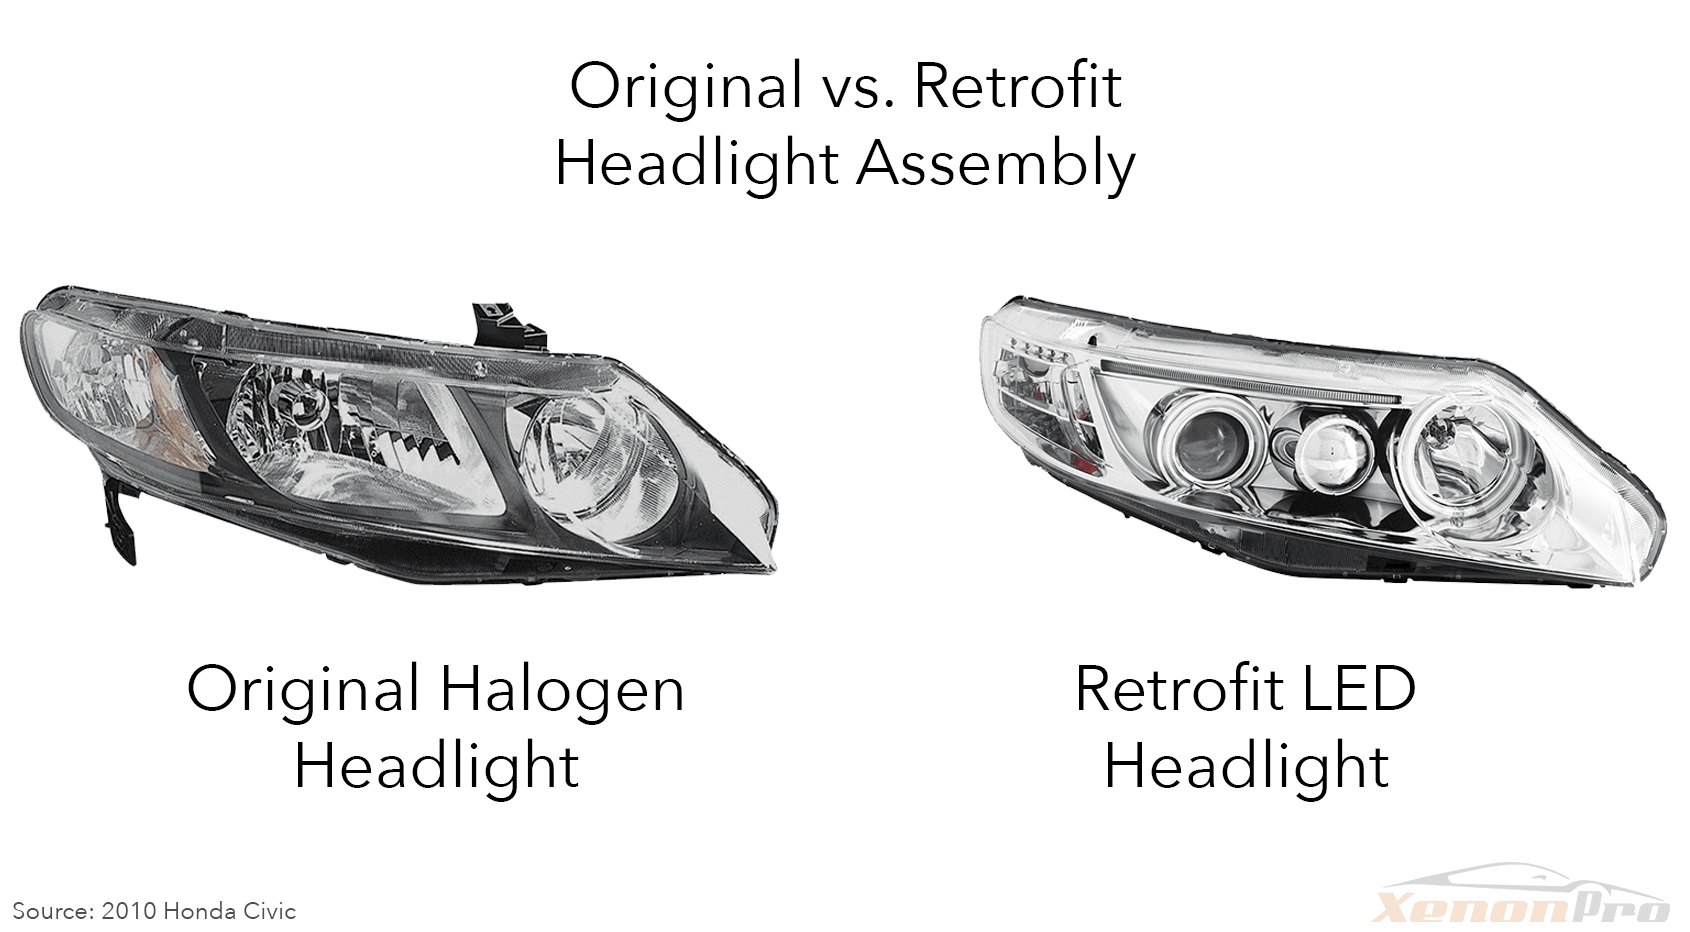 XenonPro - OEM vs Retrofit Headlight Assembly